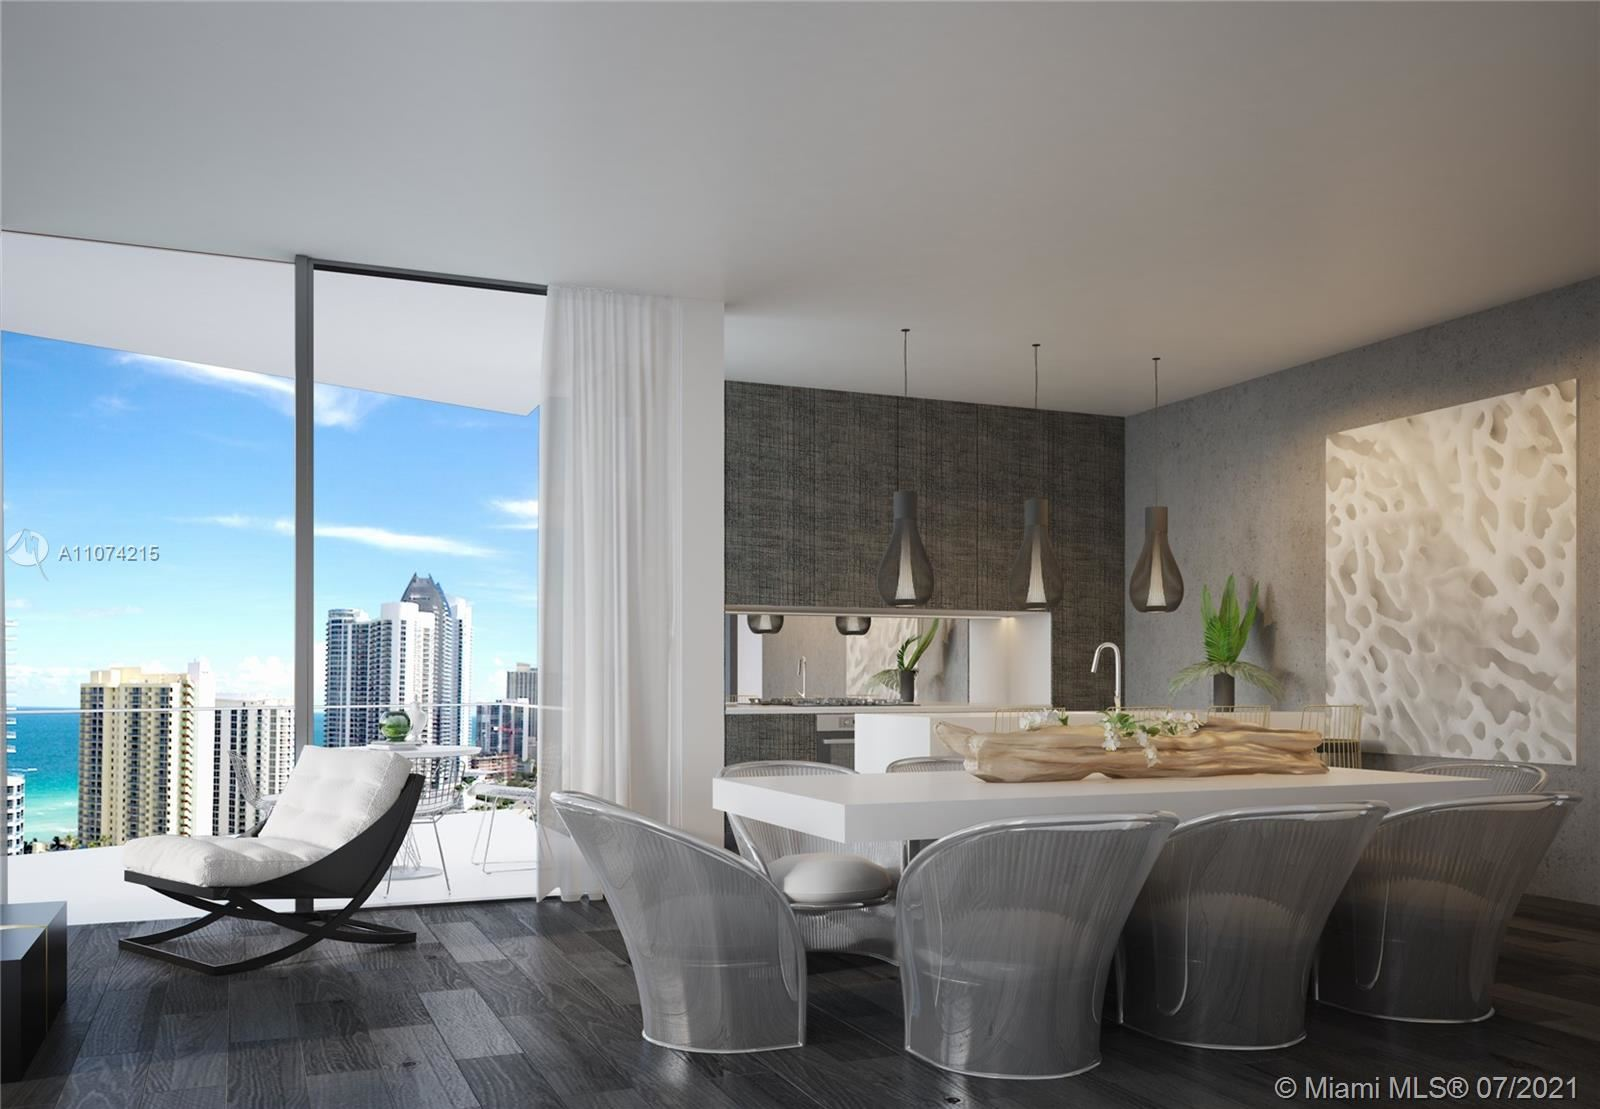 17550 Collins Ave #1005, Sunny Isles, FL 33160 - #: A11074215